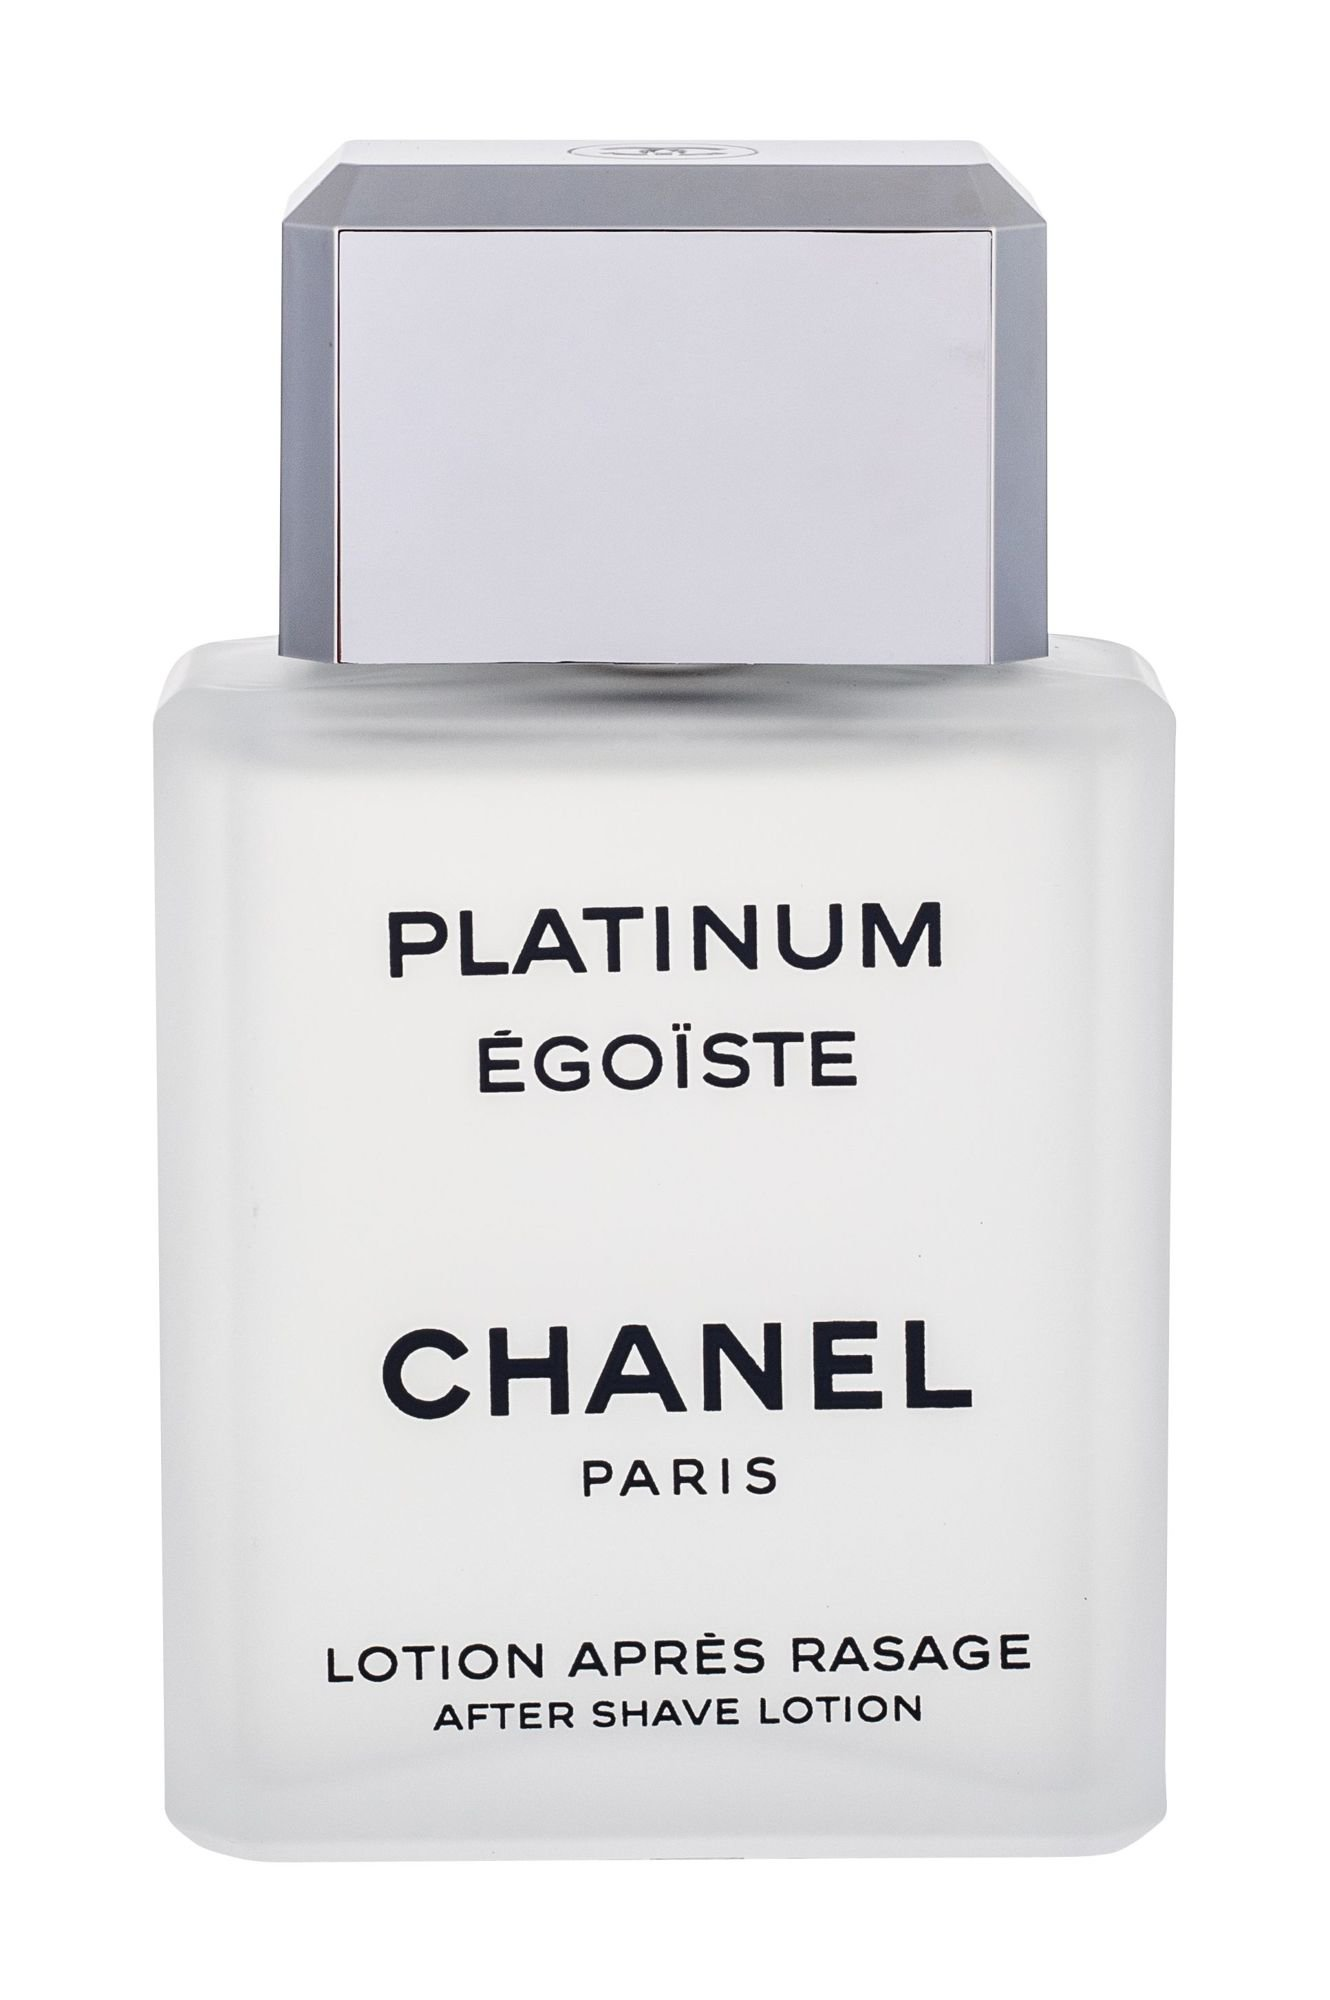 Chanel Platinum Egoiste Pour Homme, after shave 100ml